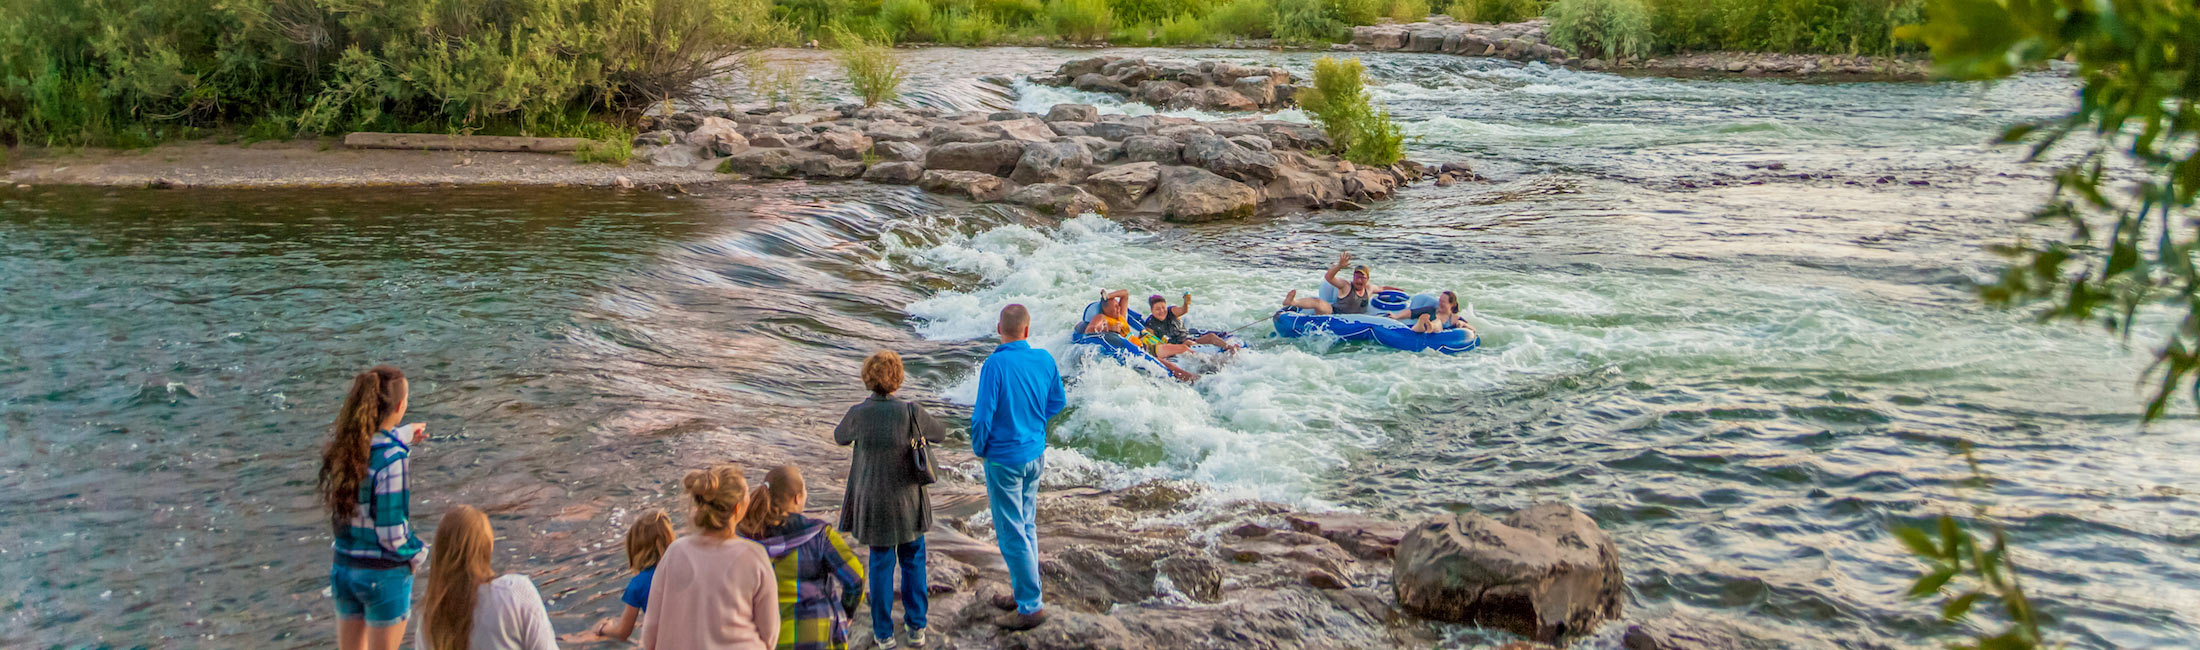 Pro Tips For Floating the River in Missoula